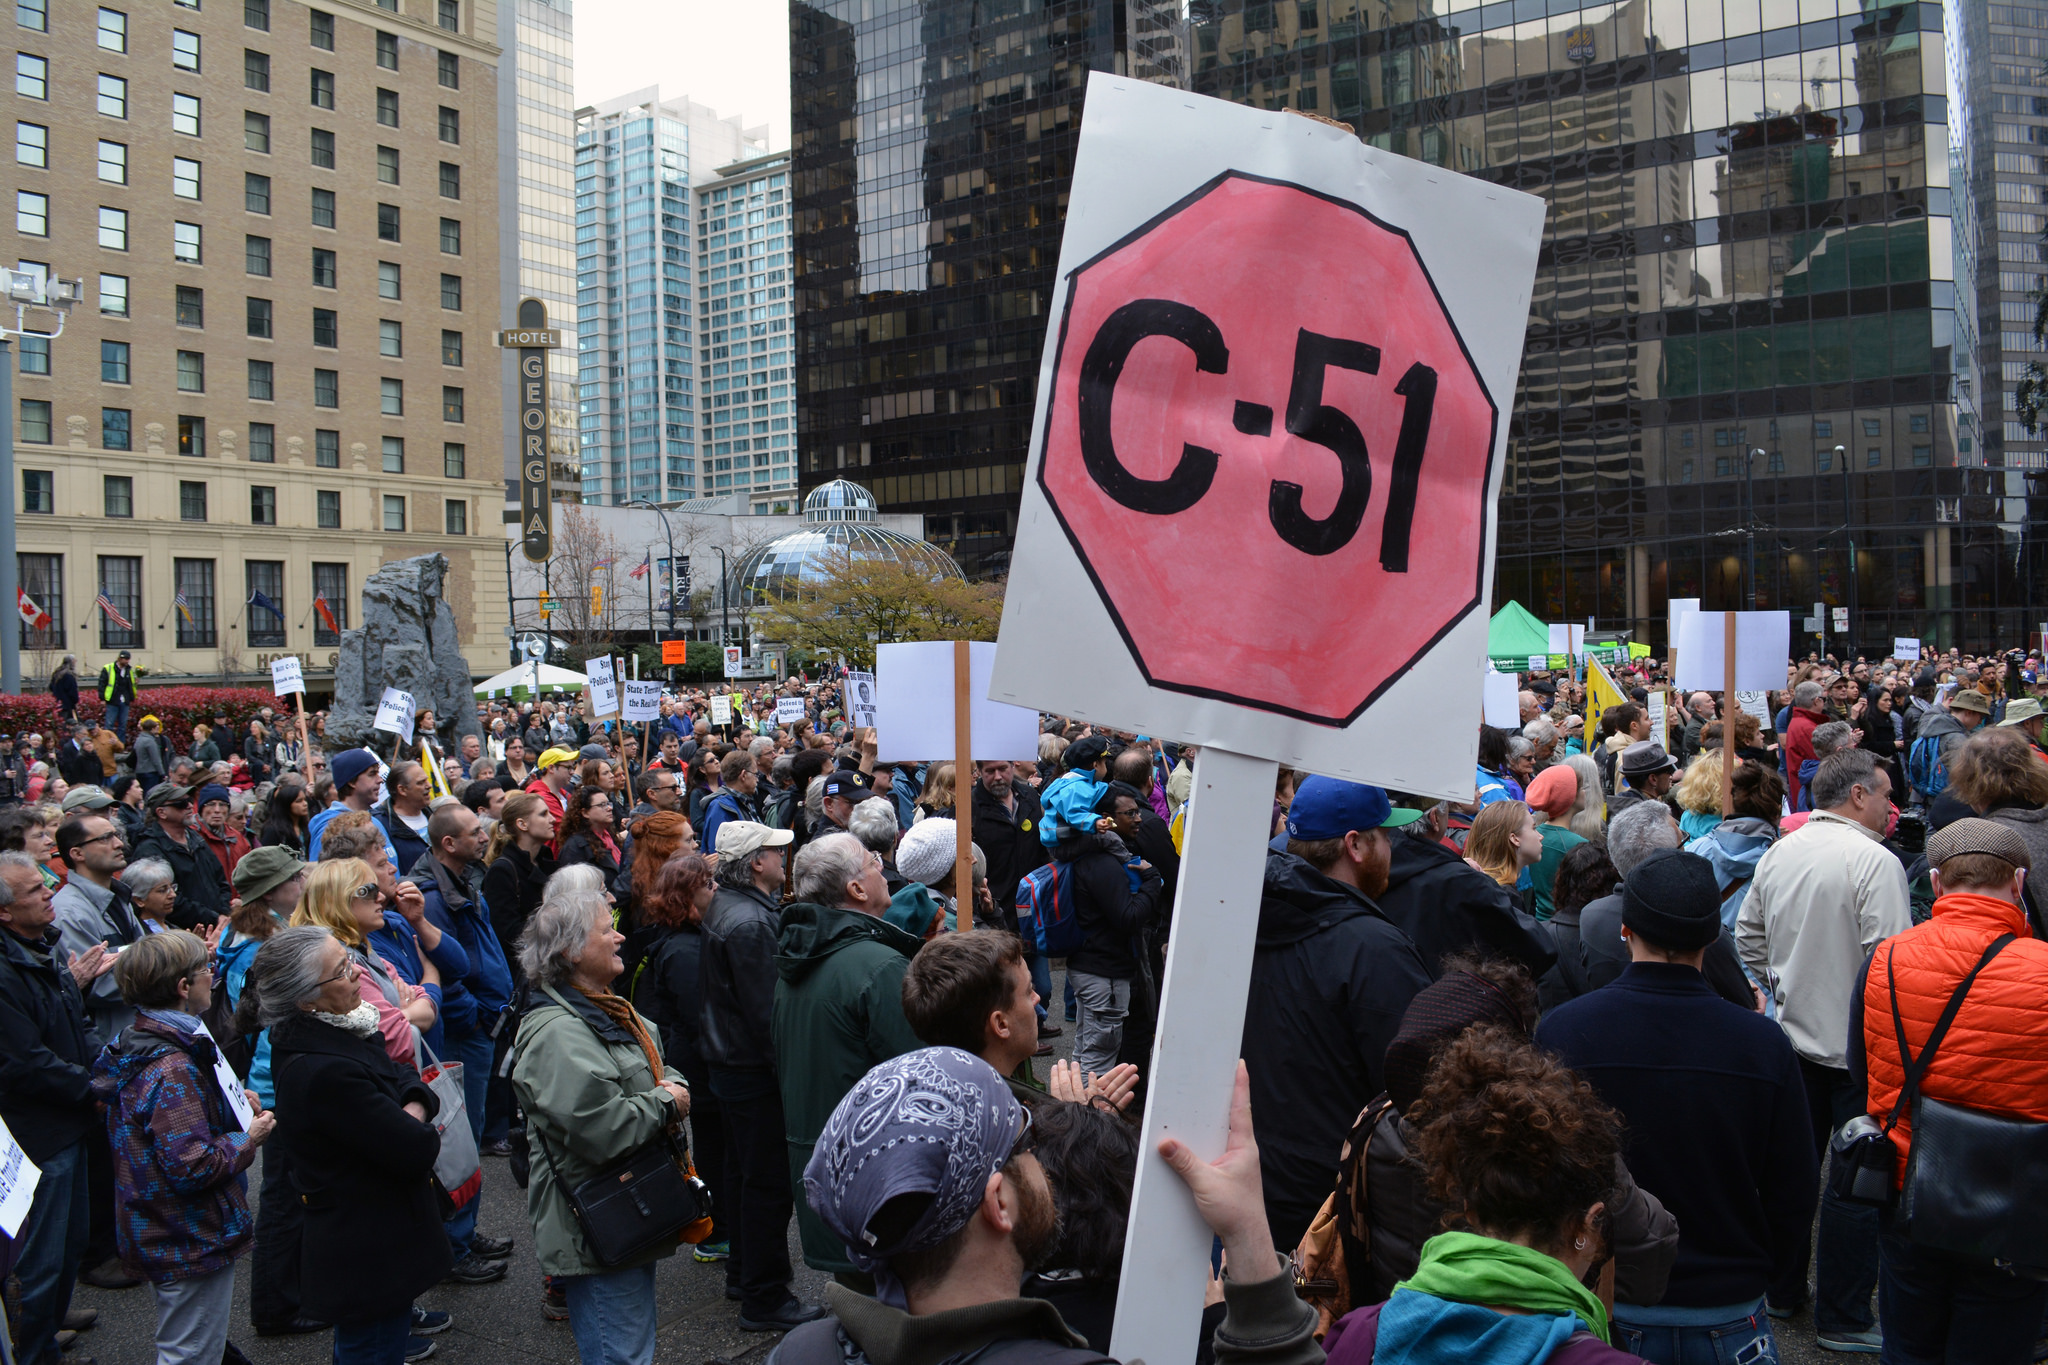 bill c-51, canada, trudeau, ralph goodale, privacy, surveillance, protest